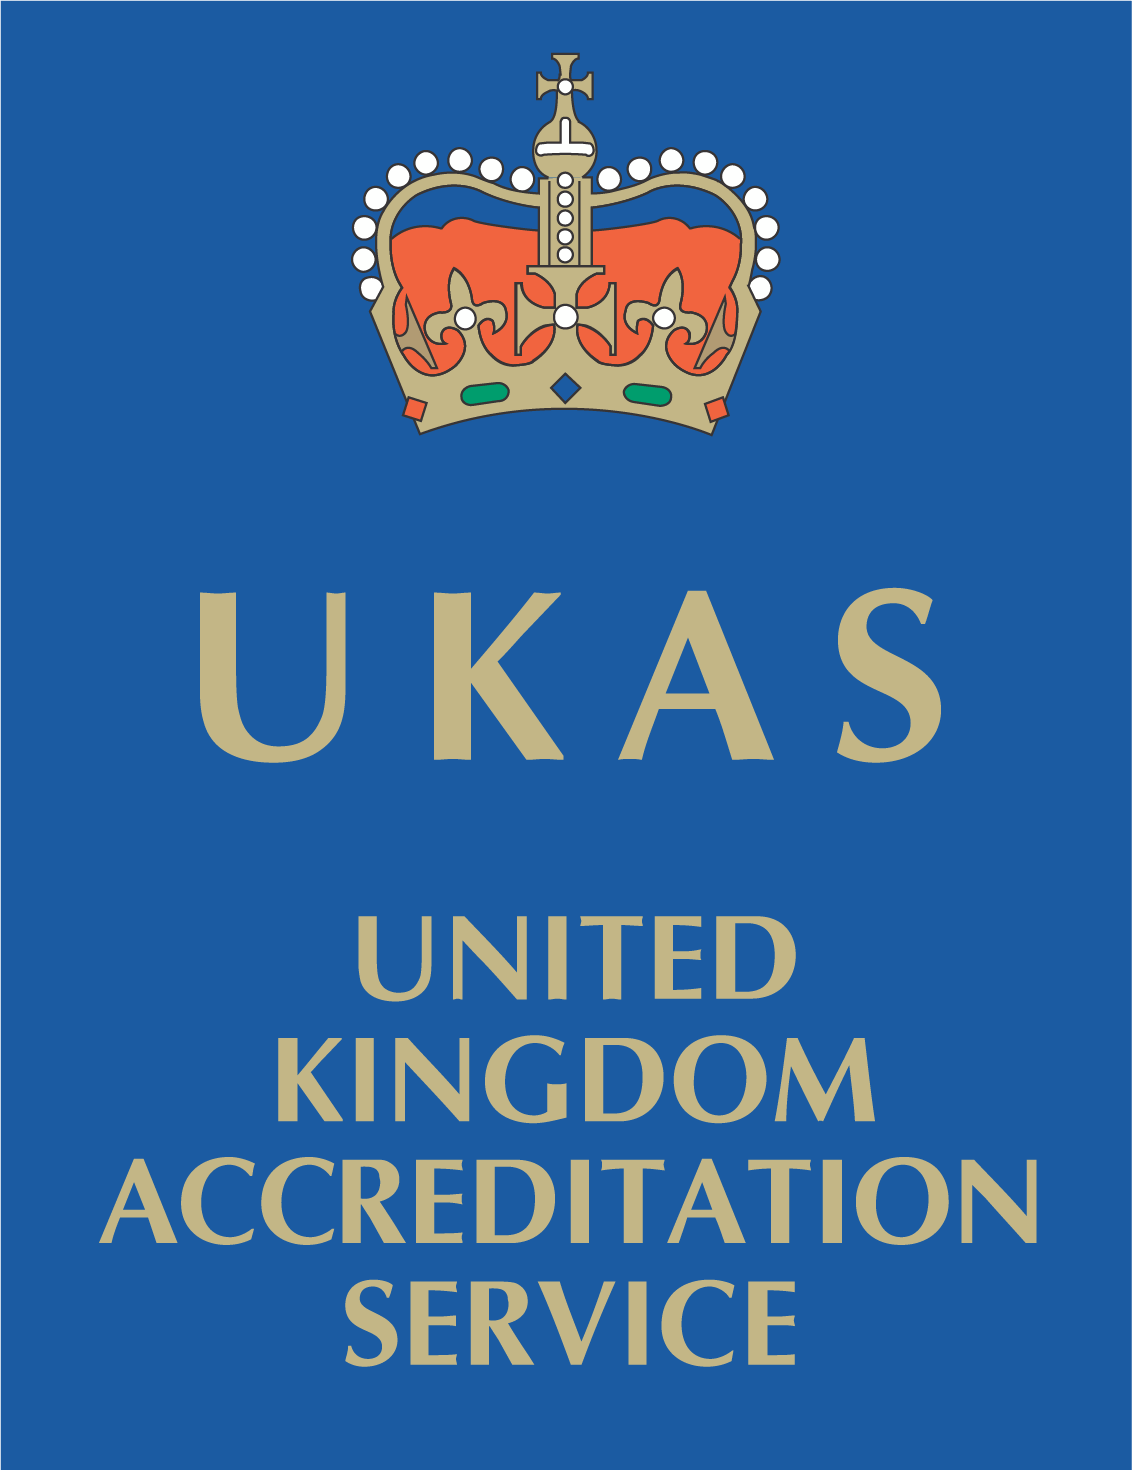 UKAS Logo [United Kingdom Accreditation Service]